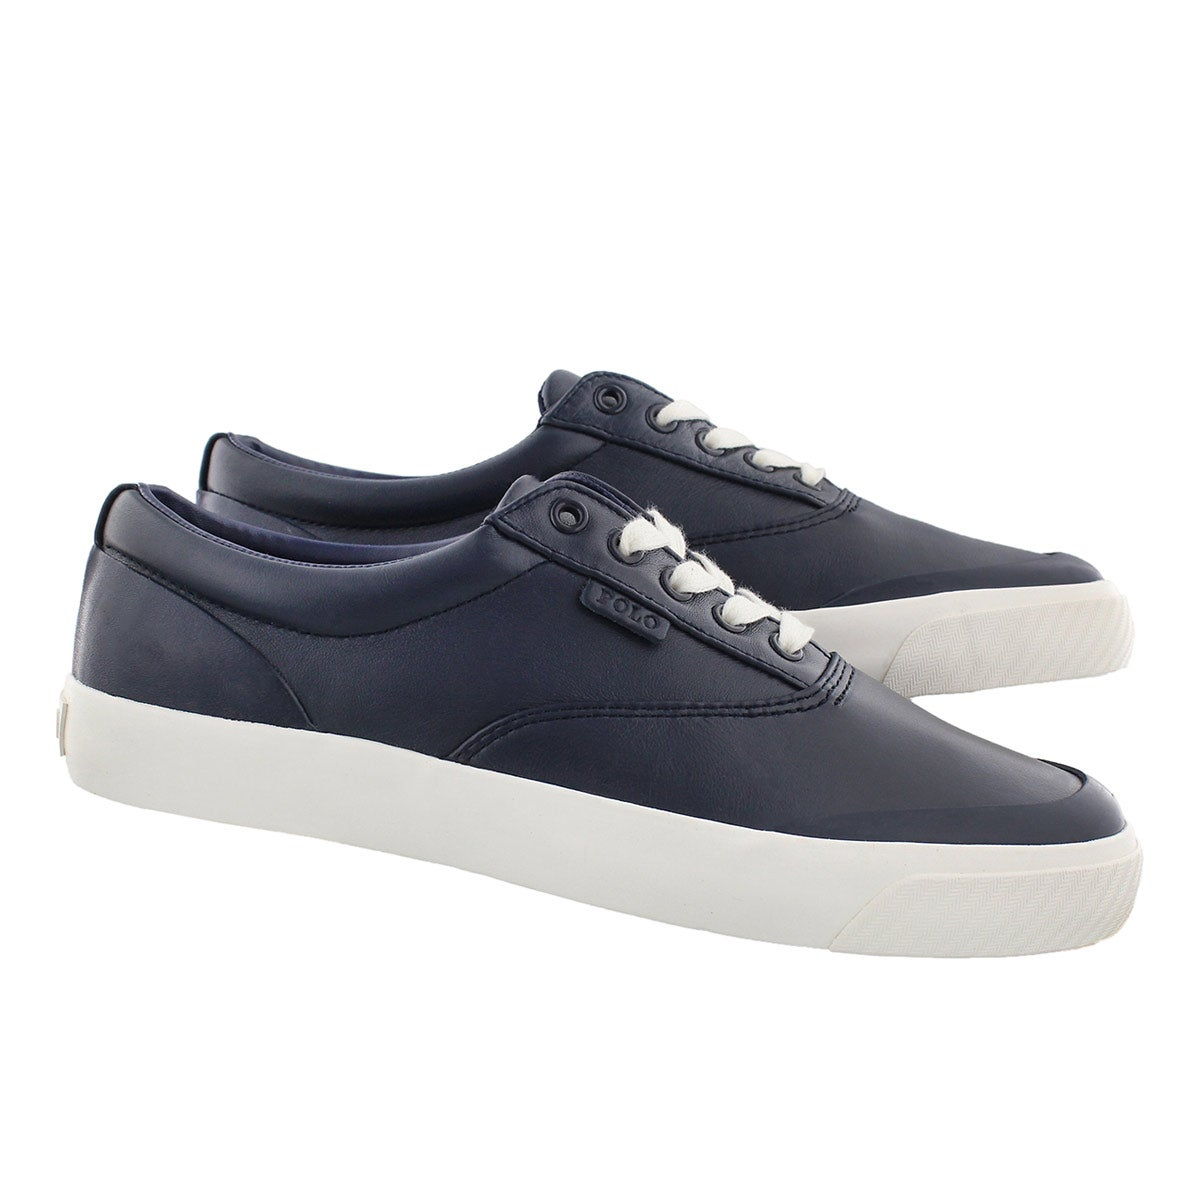 Mns Izzah newport navy lace up sneaker